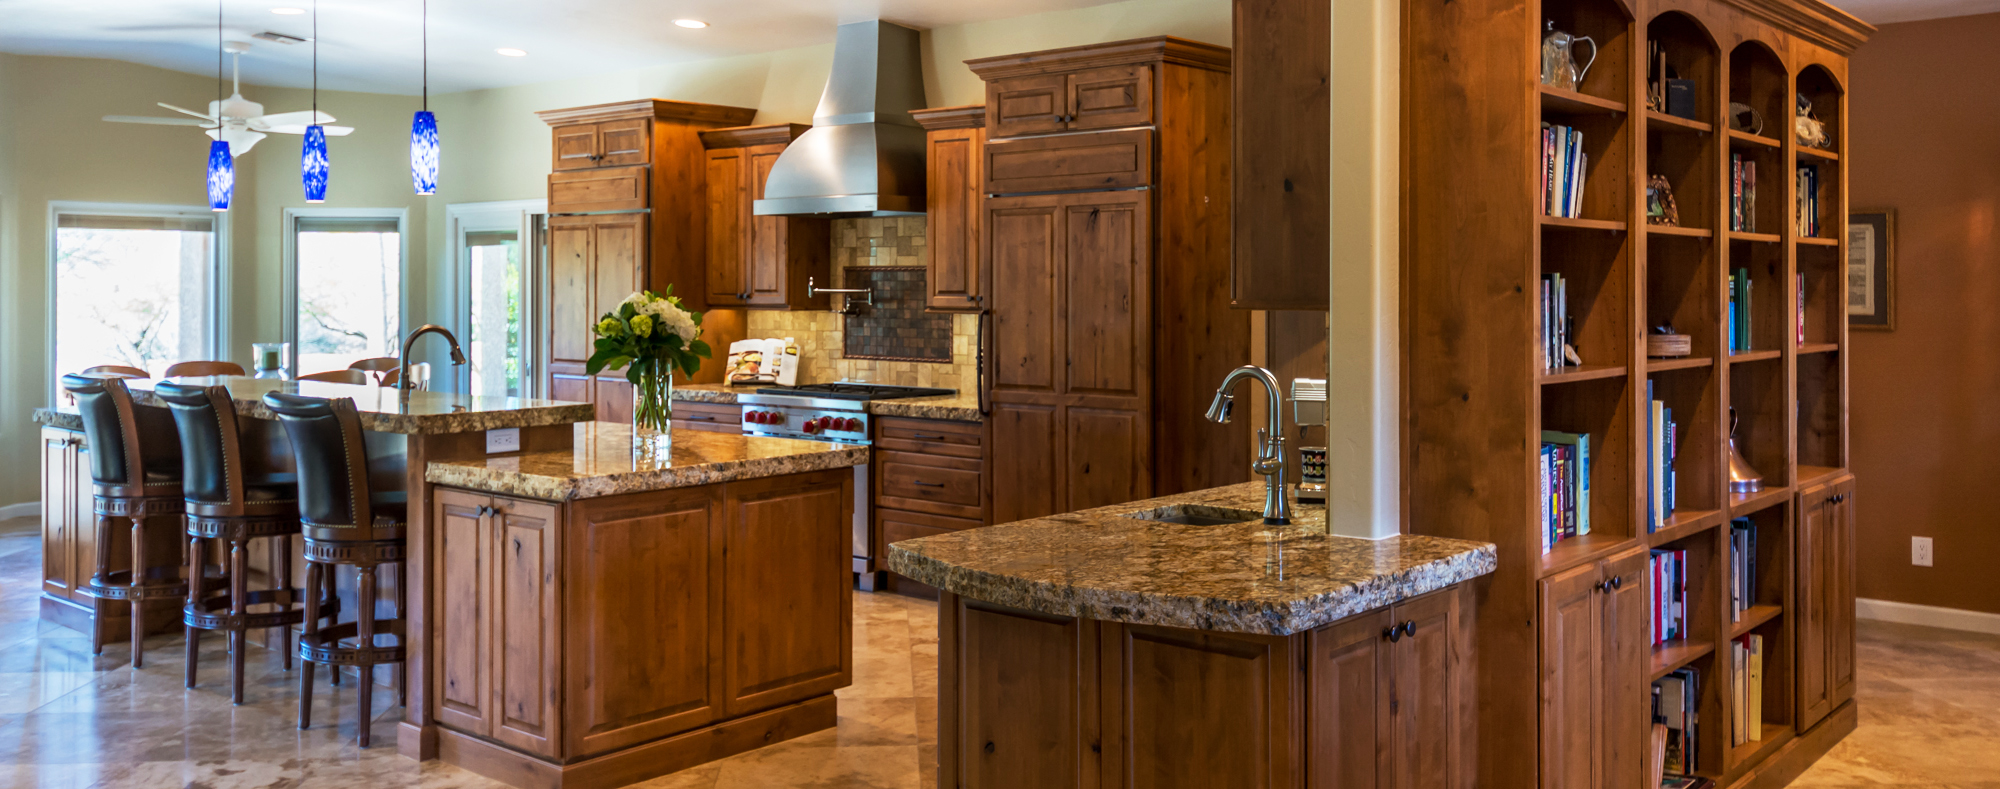 Canyon Cabinetry Kitchen Design Bath Remodel